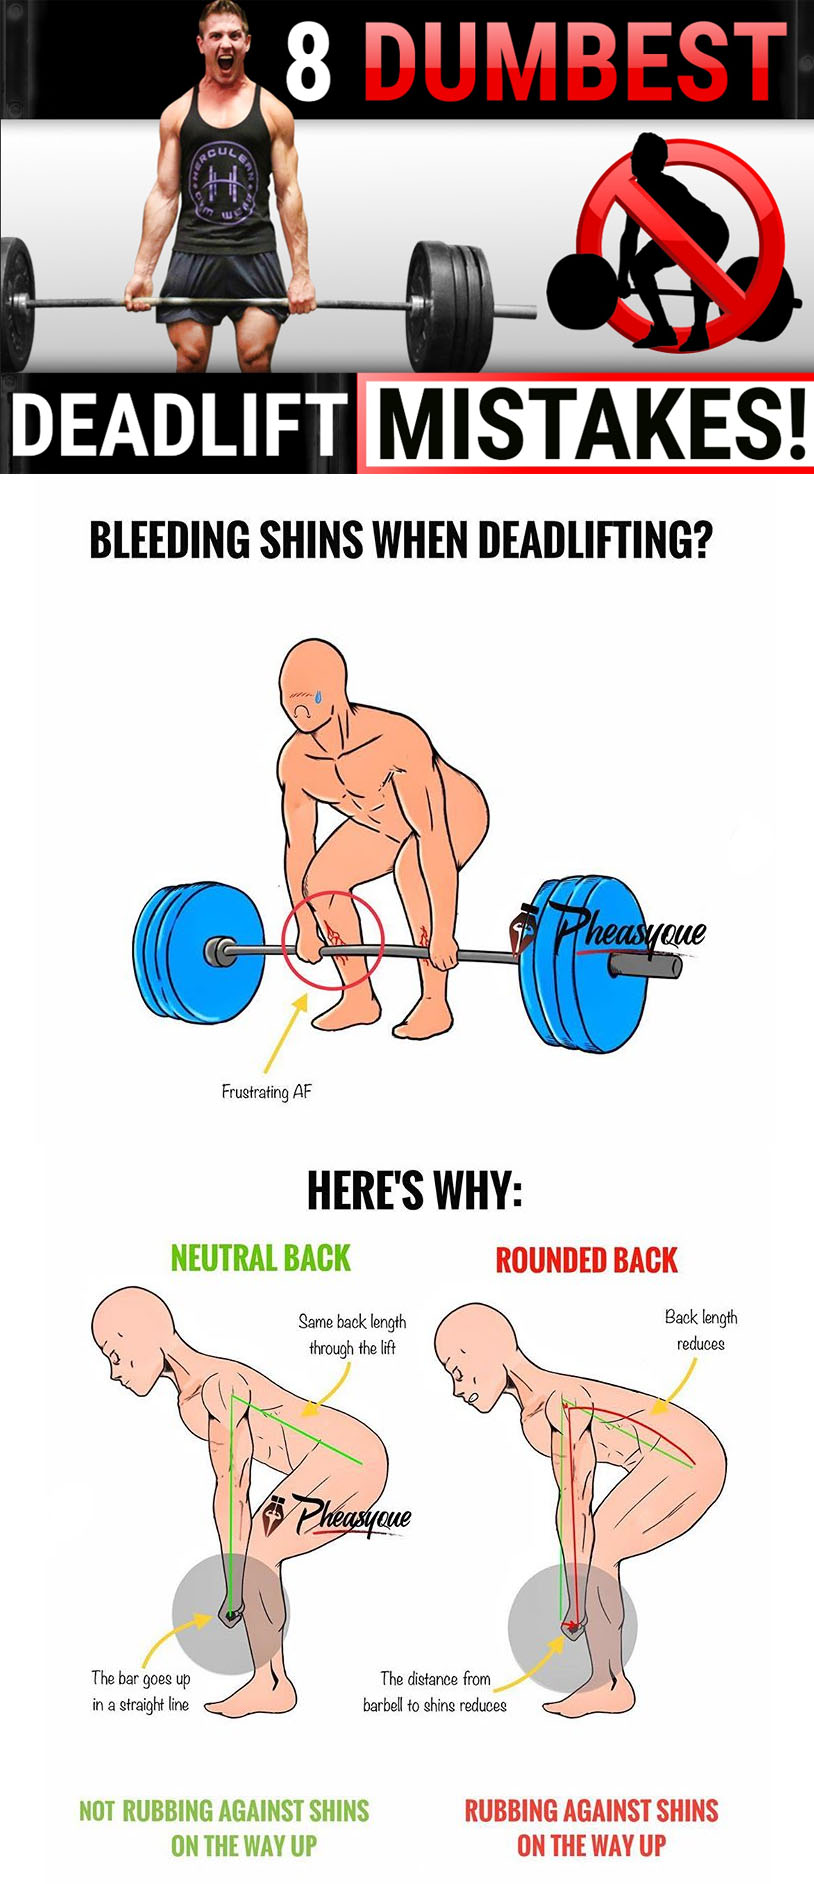 HOW TO DEADLIFTS